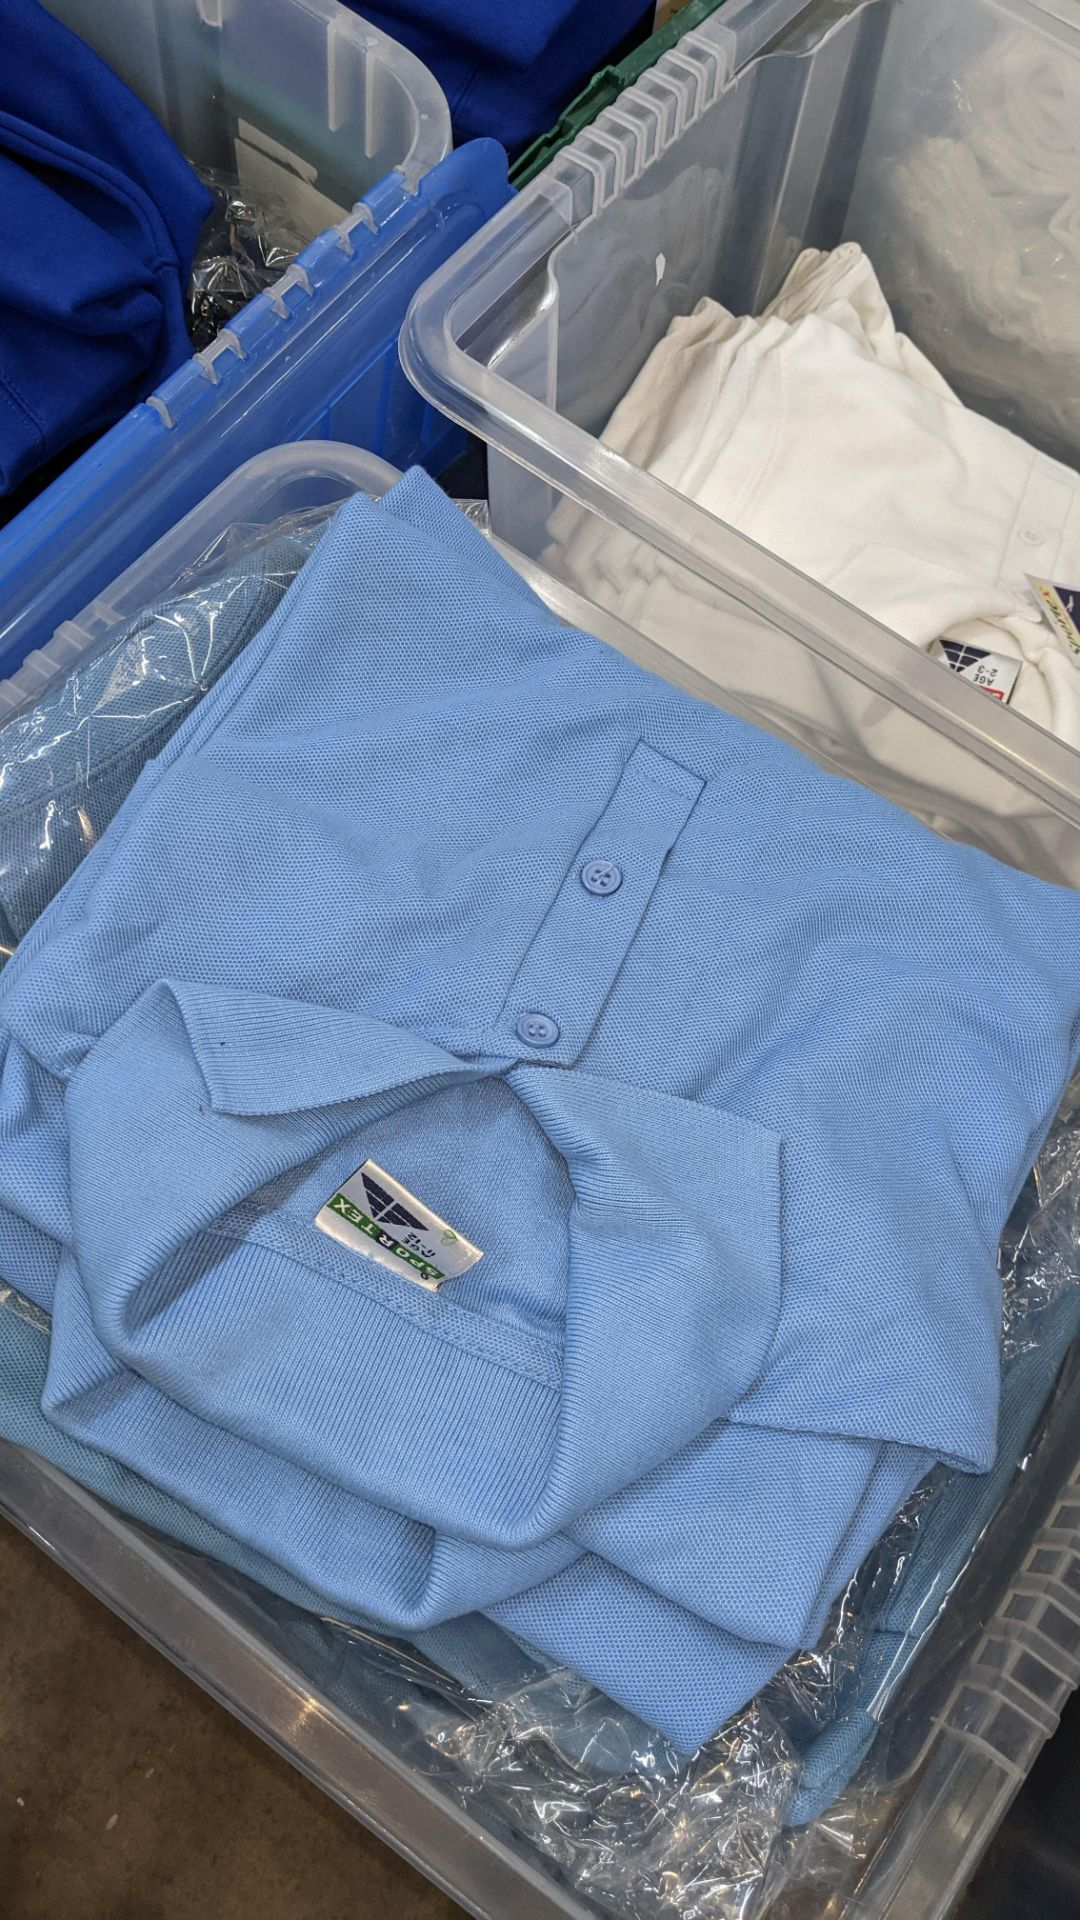 Approx 60 off Sportex children's polo shirts in white & blue - the contents of 3 crates. NB crates - Image 6 of 6